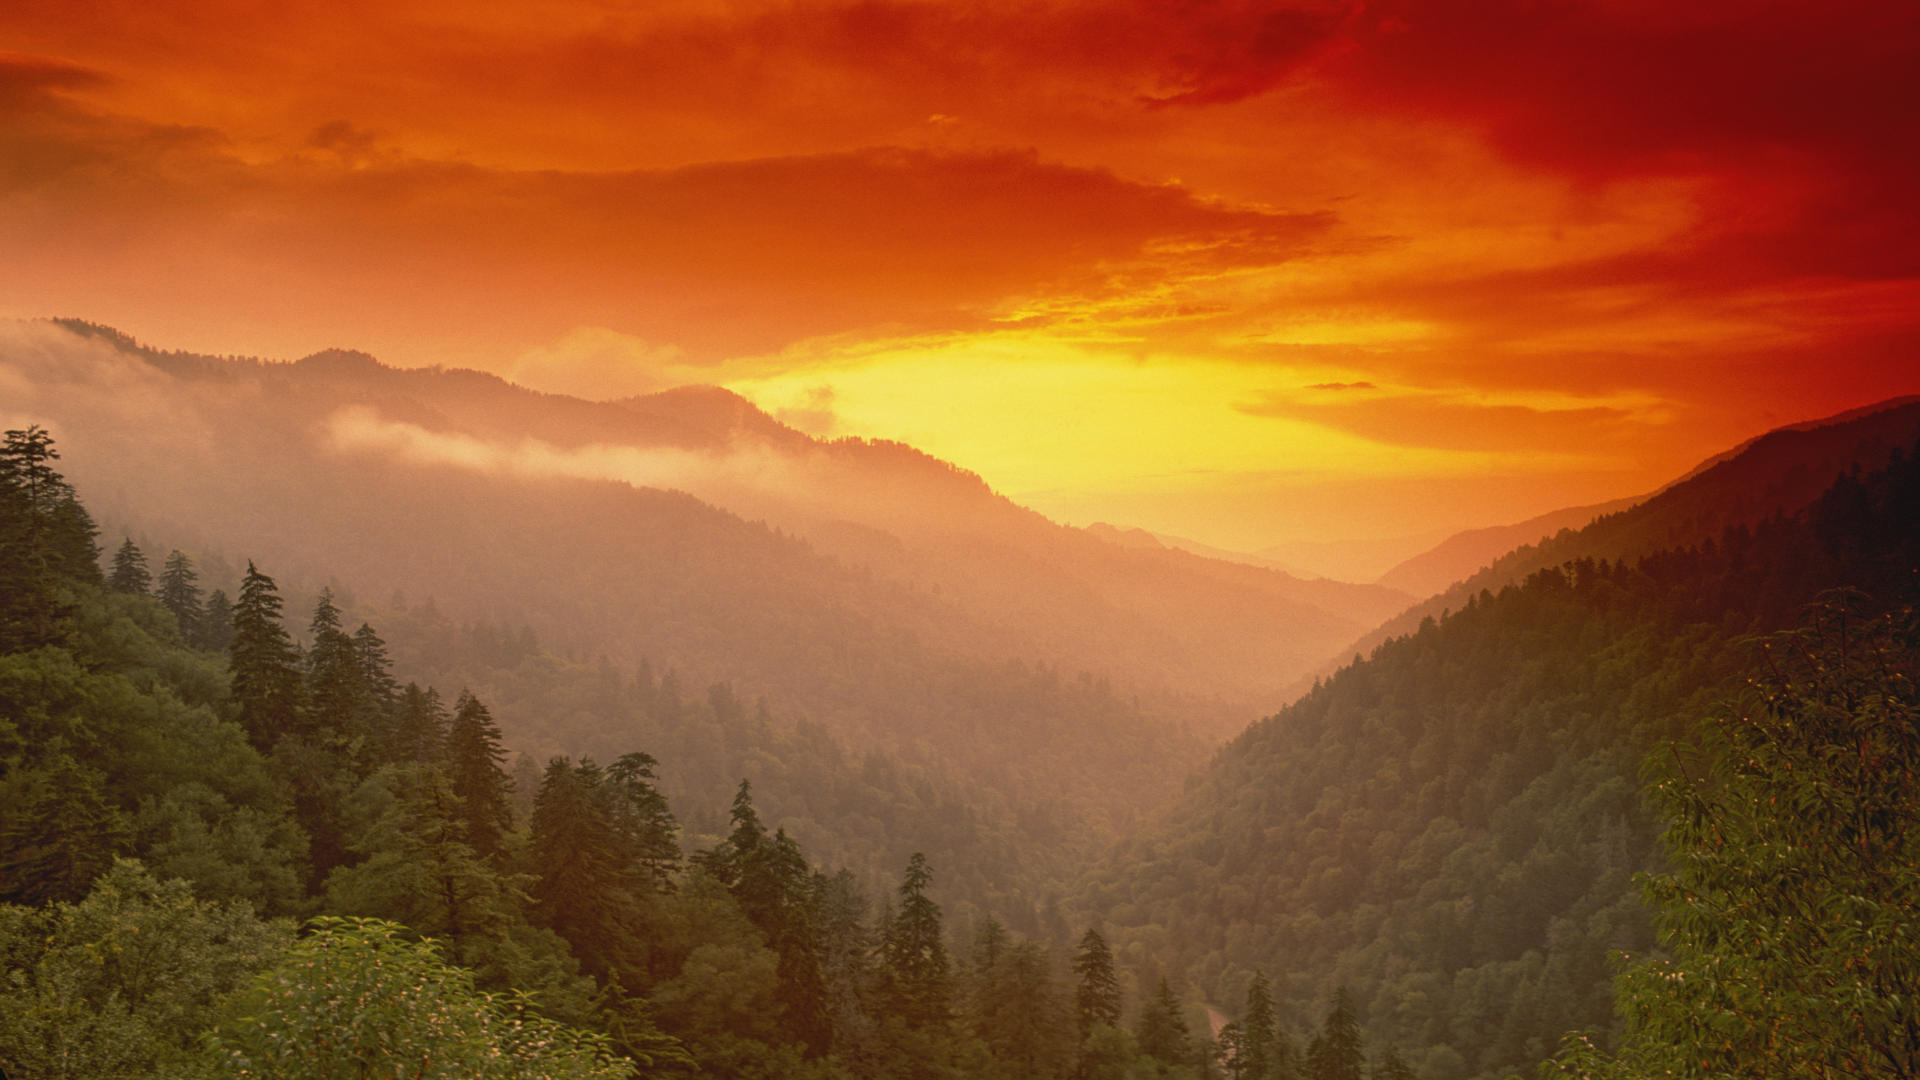 And Wallpaper Sunset From Morton Overlook Great Smoky Mountains 1920x1080